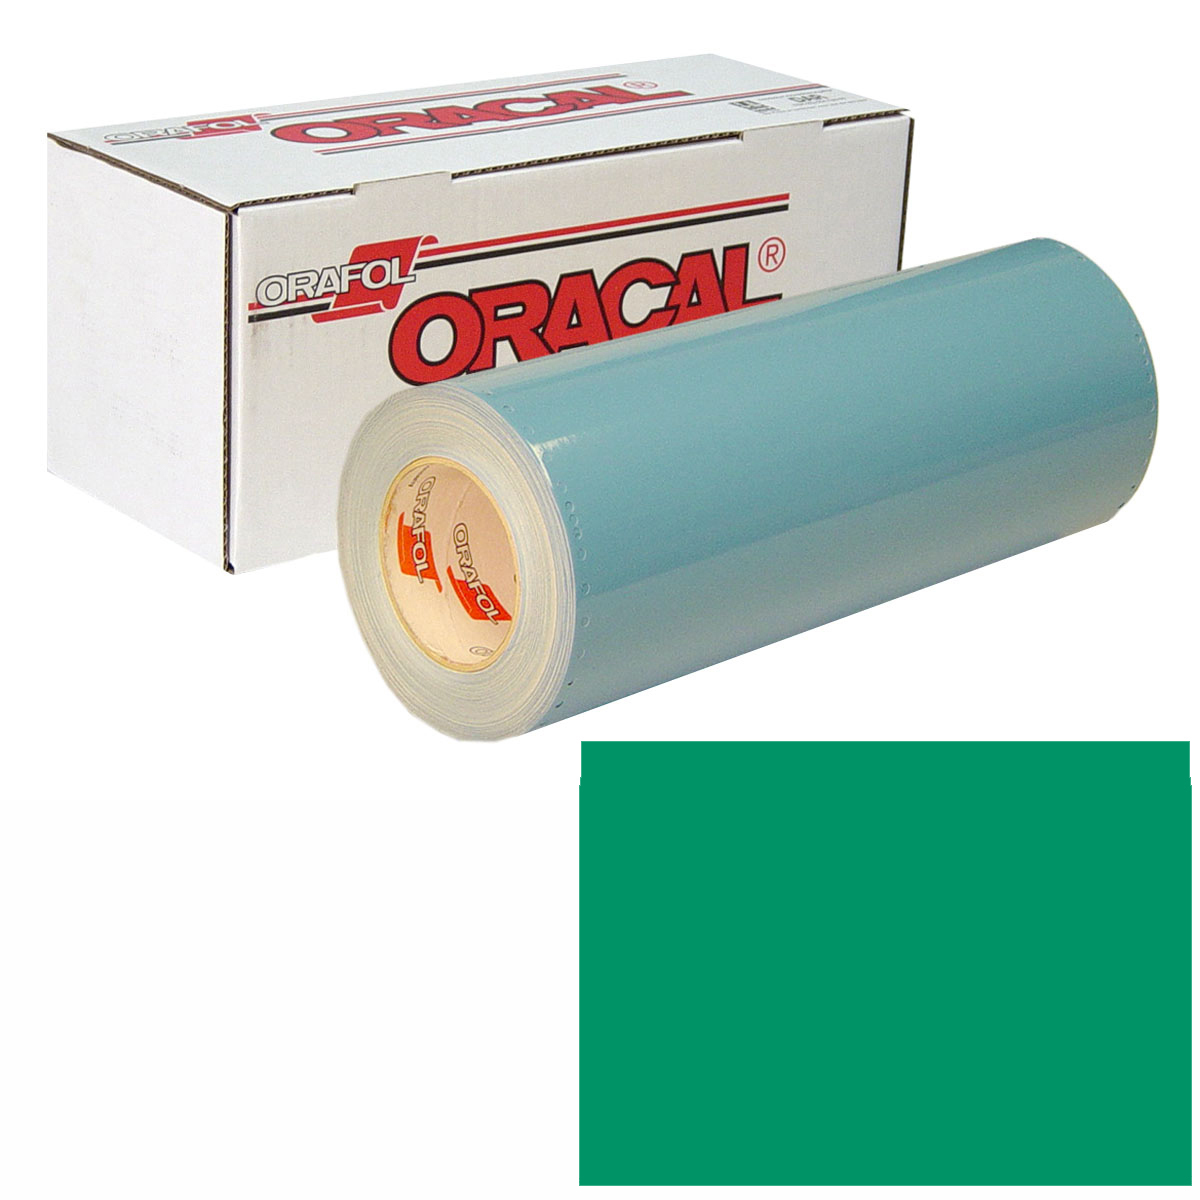 ORACAL 751 30In X 10Yd 061 Green